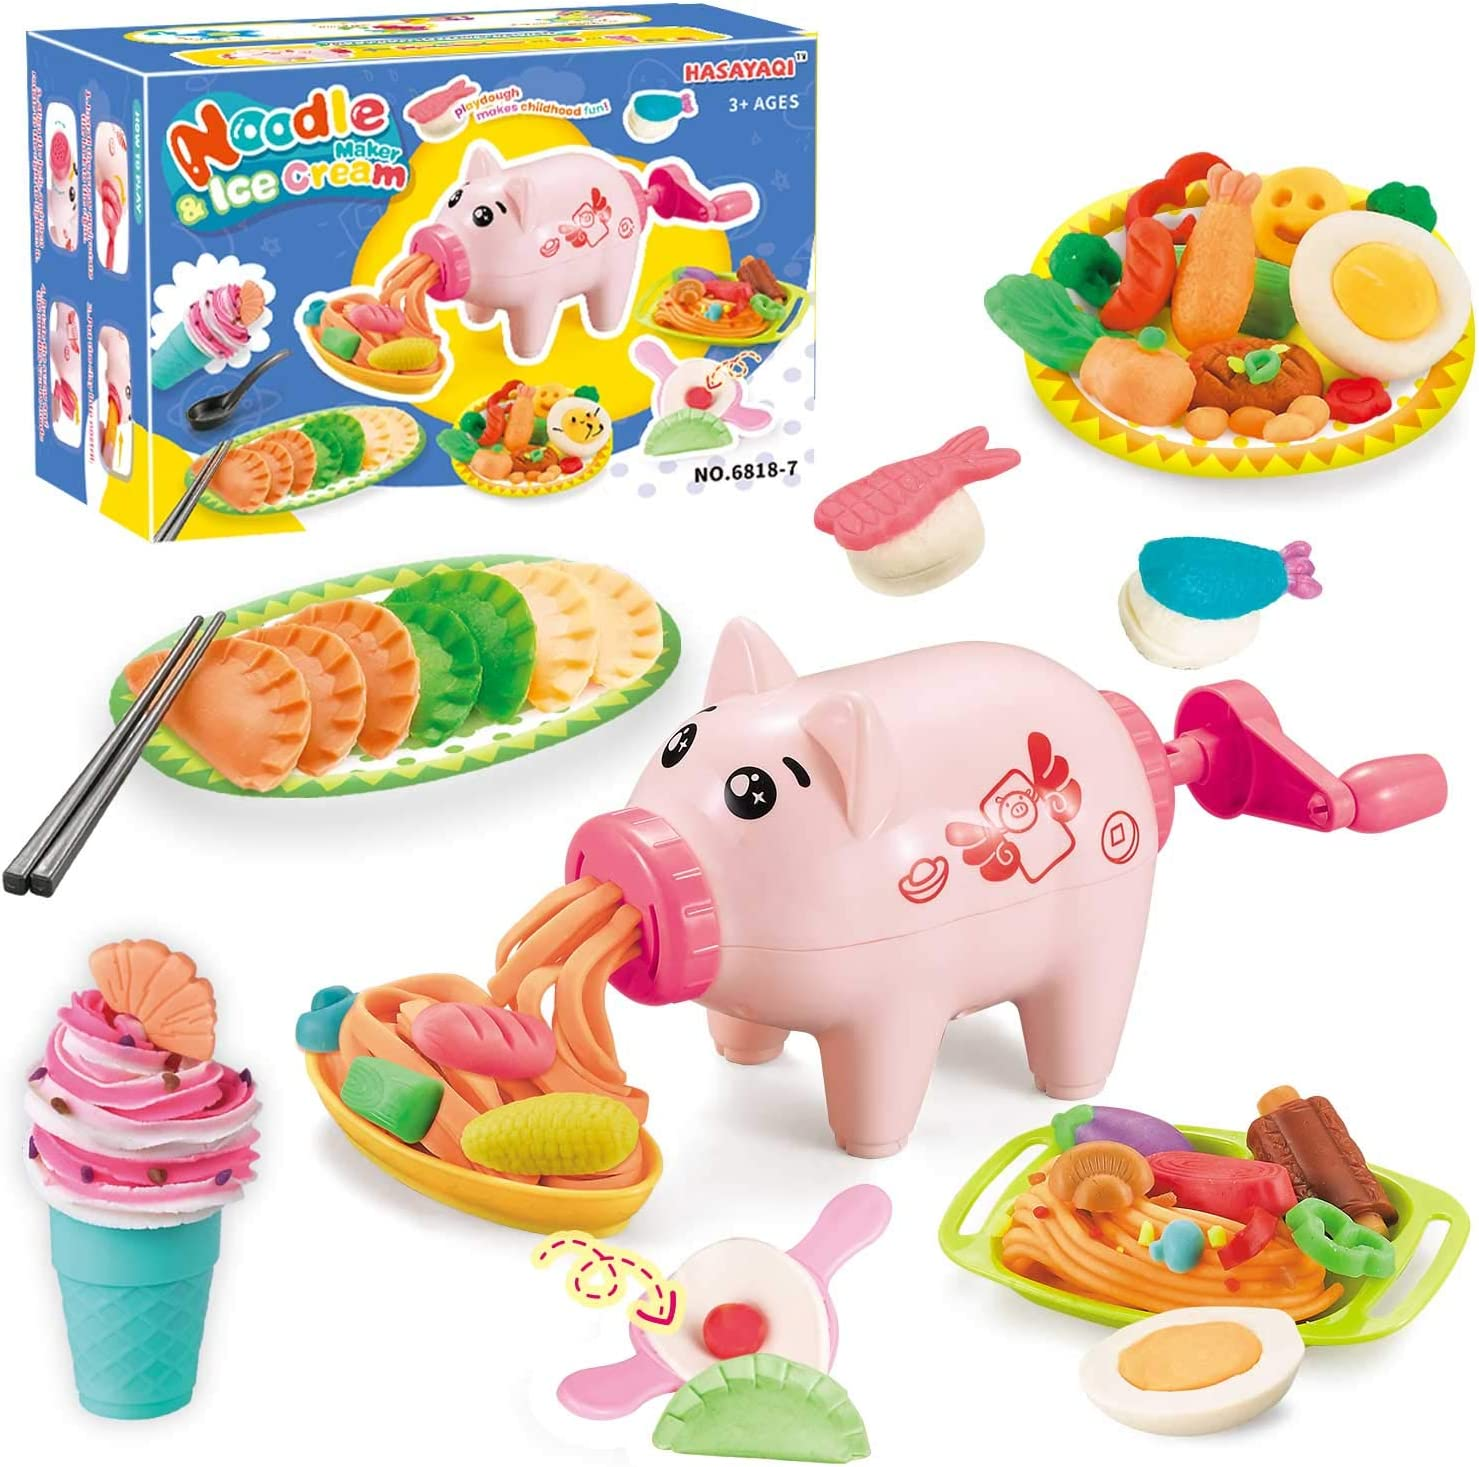 Playdough Kitchen Creations Noodle Party & Ultimate Swirl Ice Cream Maker Play Food Set for Kids 3 Years and Up,Compound is no Contained